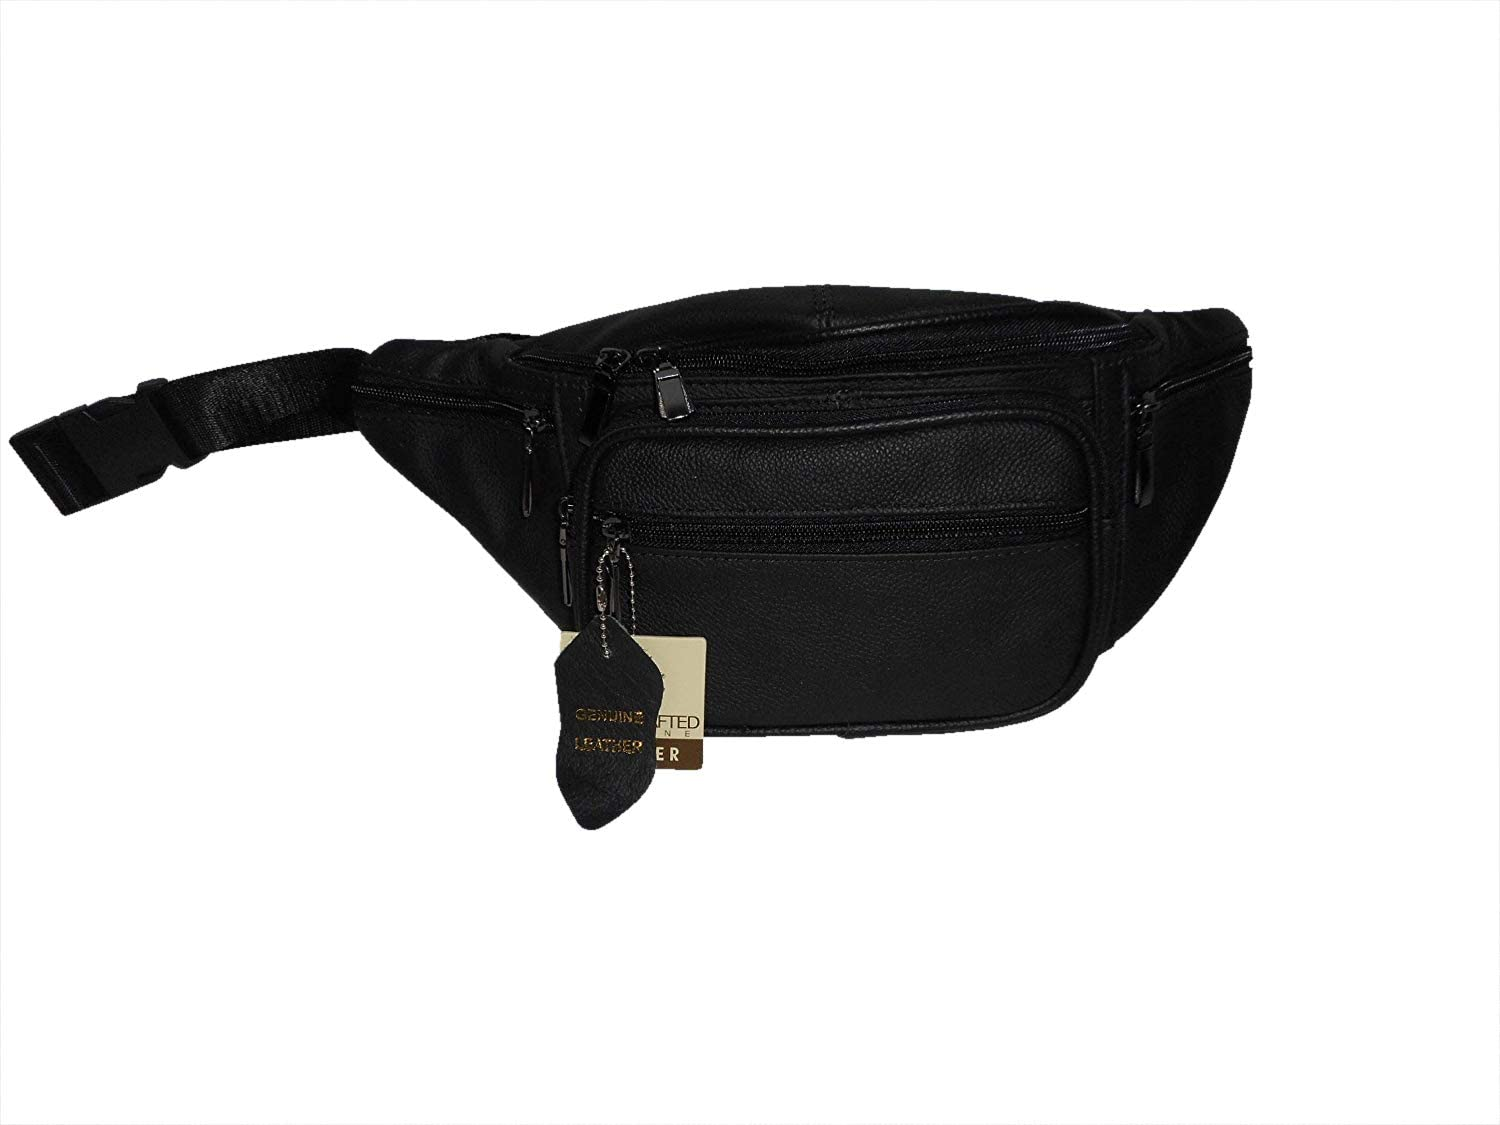 Eastern Leather Fanny Pack with Two Front Pockets, Two Side Pockets, Hidden Back Pocket.